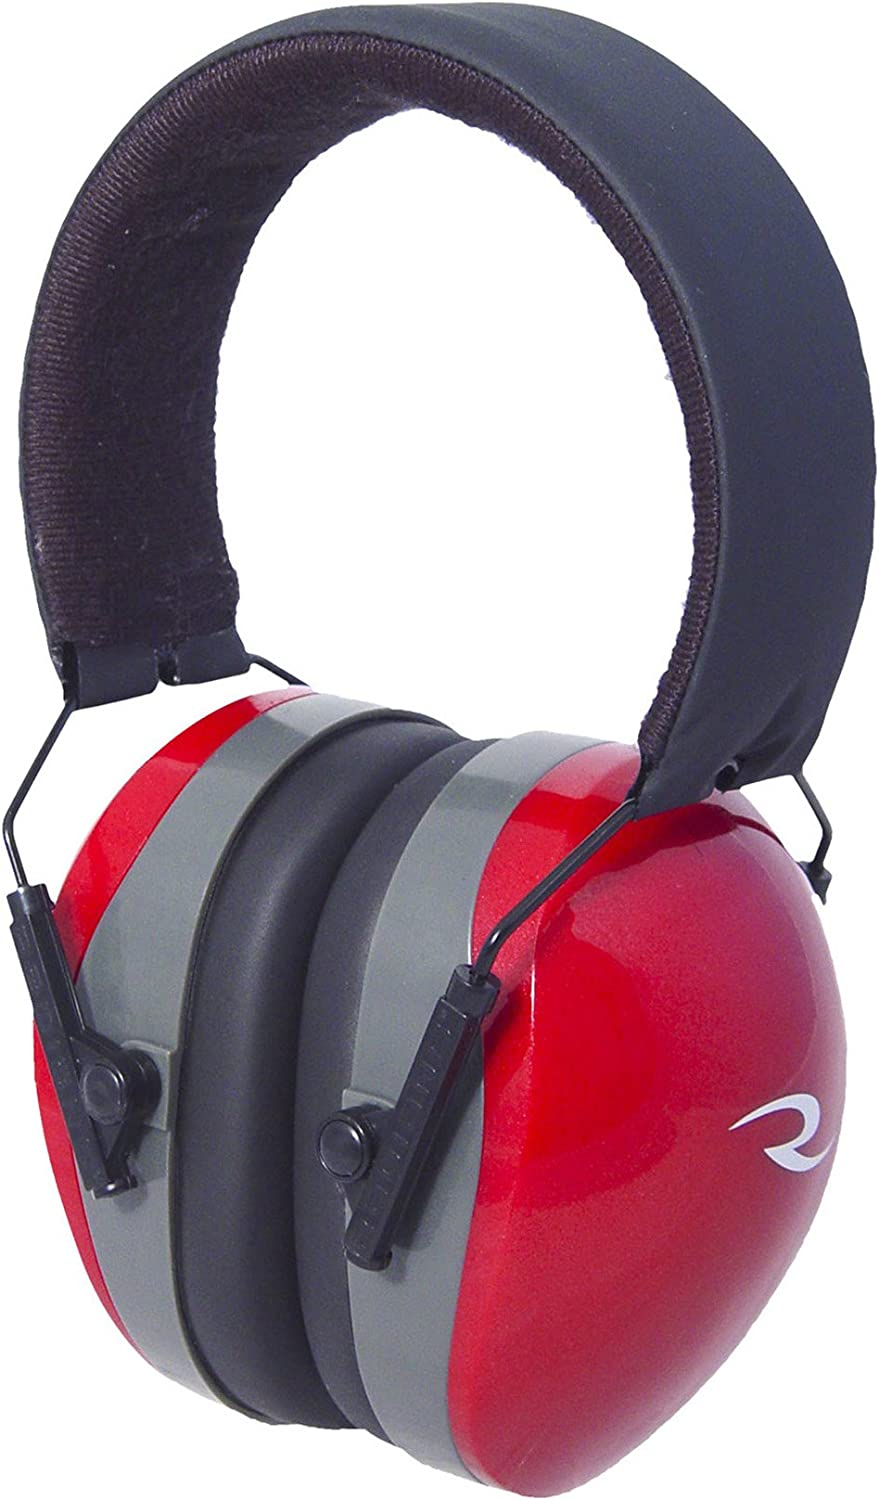 Radians Terminator Folding Earmuff Very Outlet ☆ Free Shipping popular